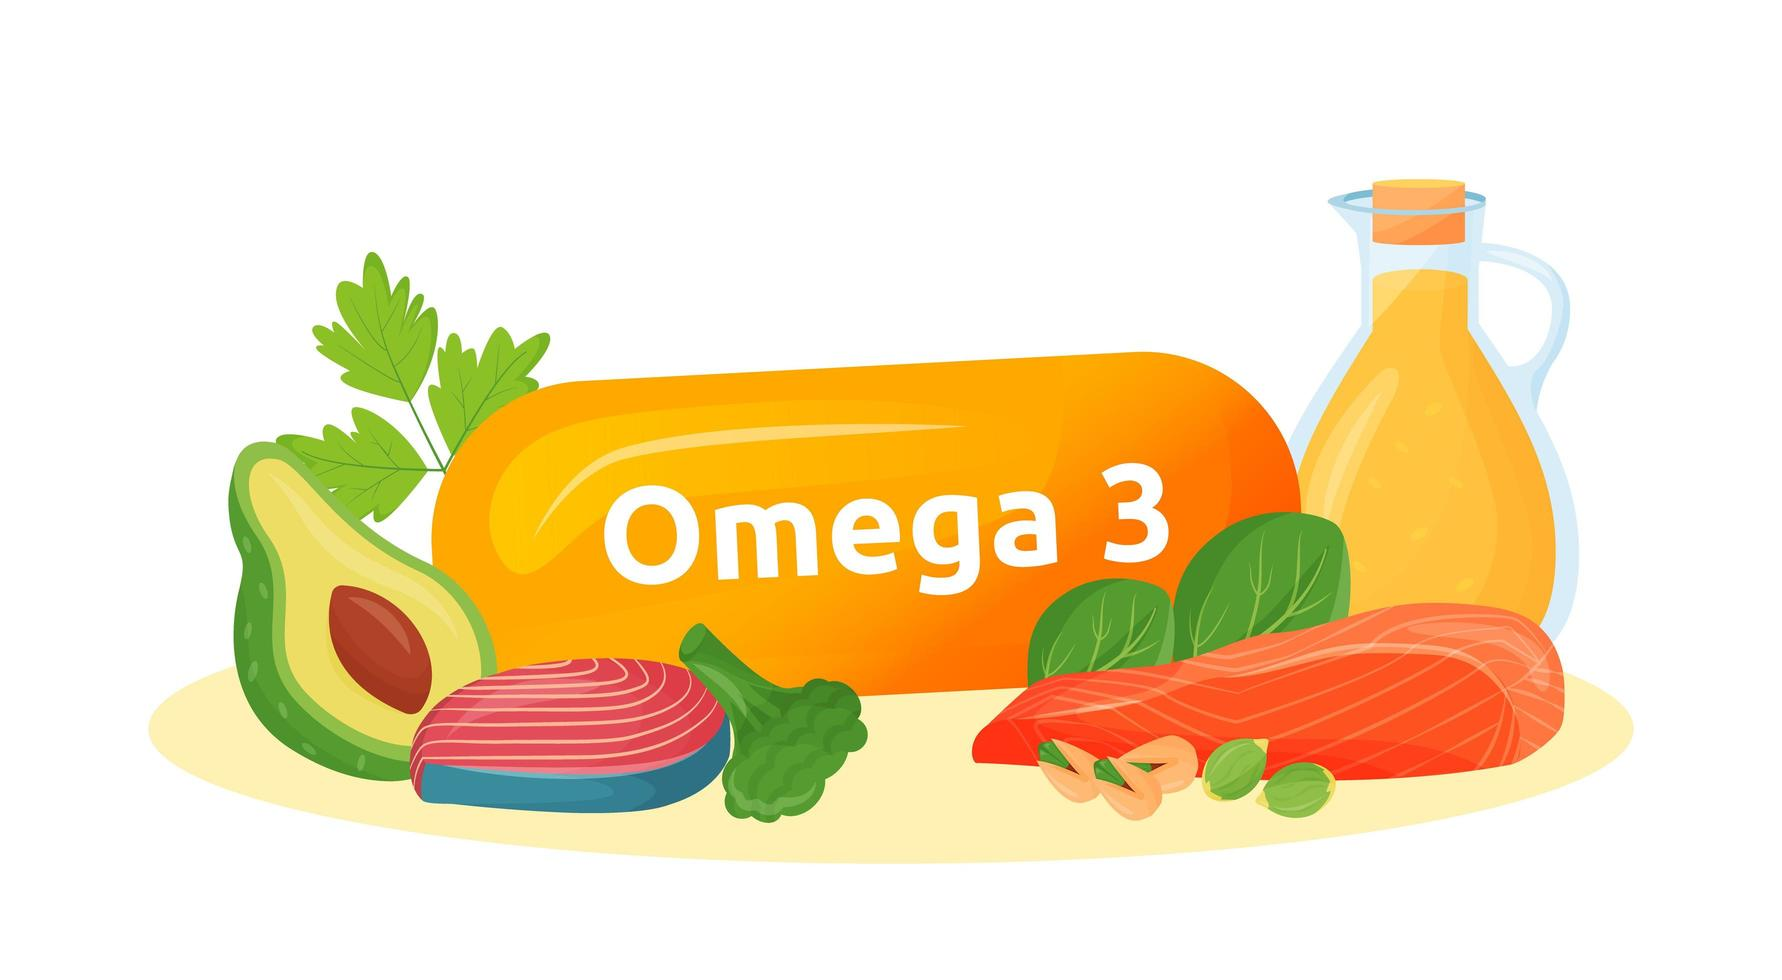 Omega 3 food sources vector